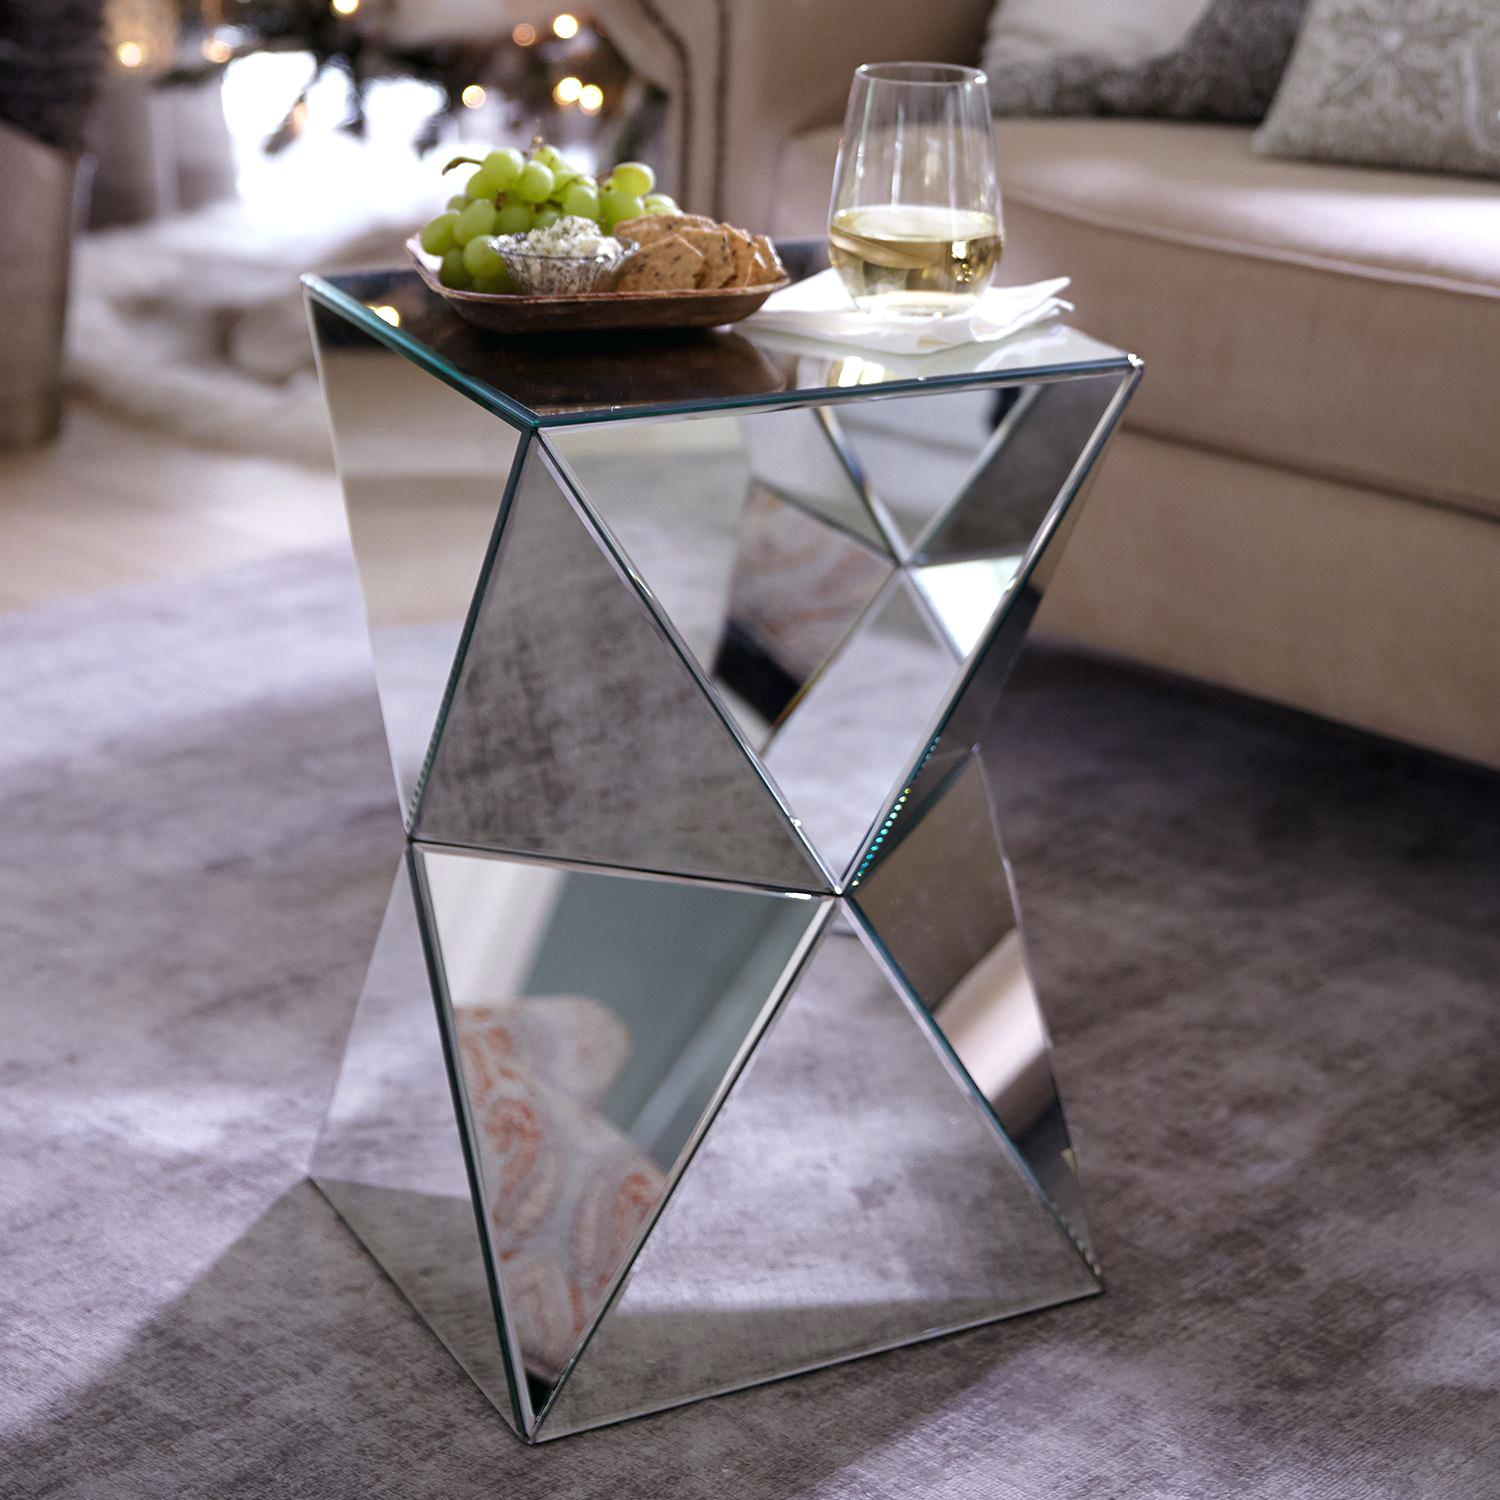 mirrored accent table coaster tables contemporary with drawer threshold wine rack below bath and beyond gift registry linens one fold out coffee christmas decor best bedroom